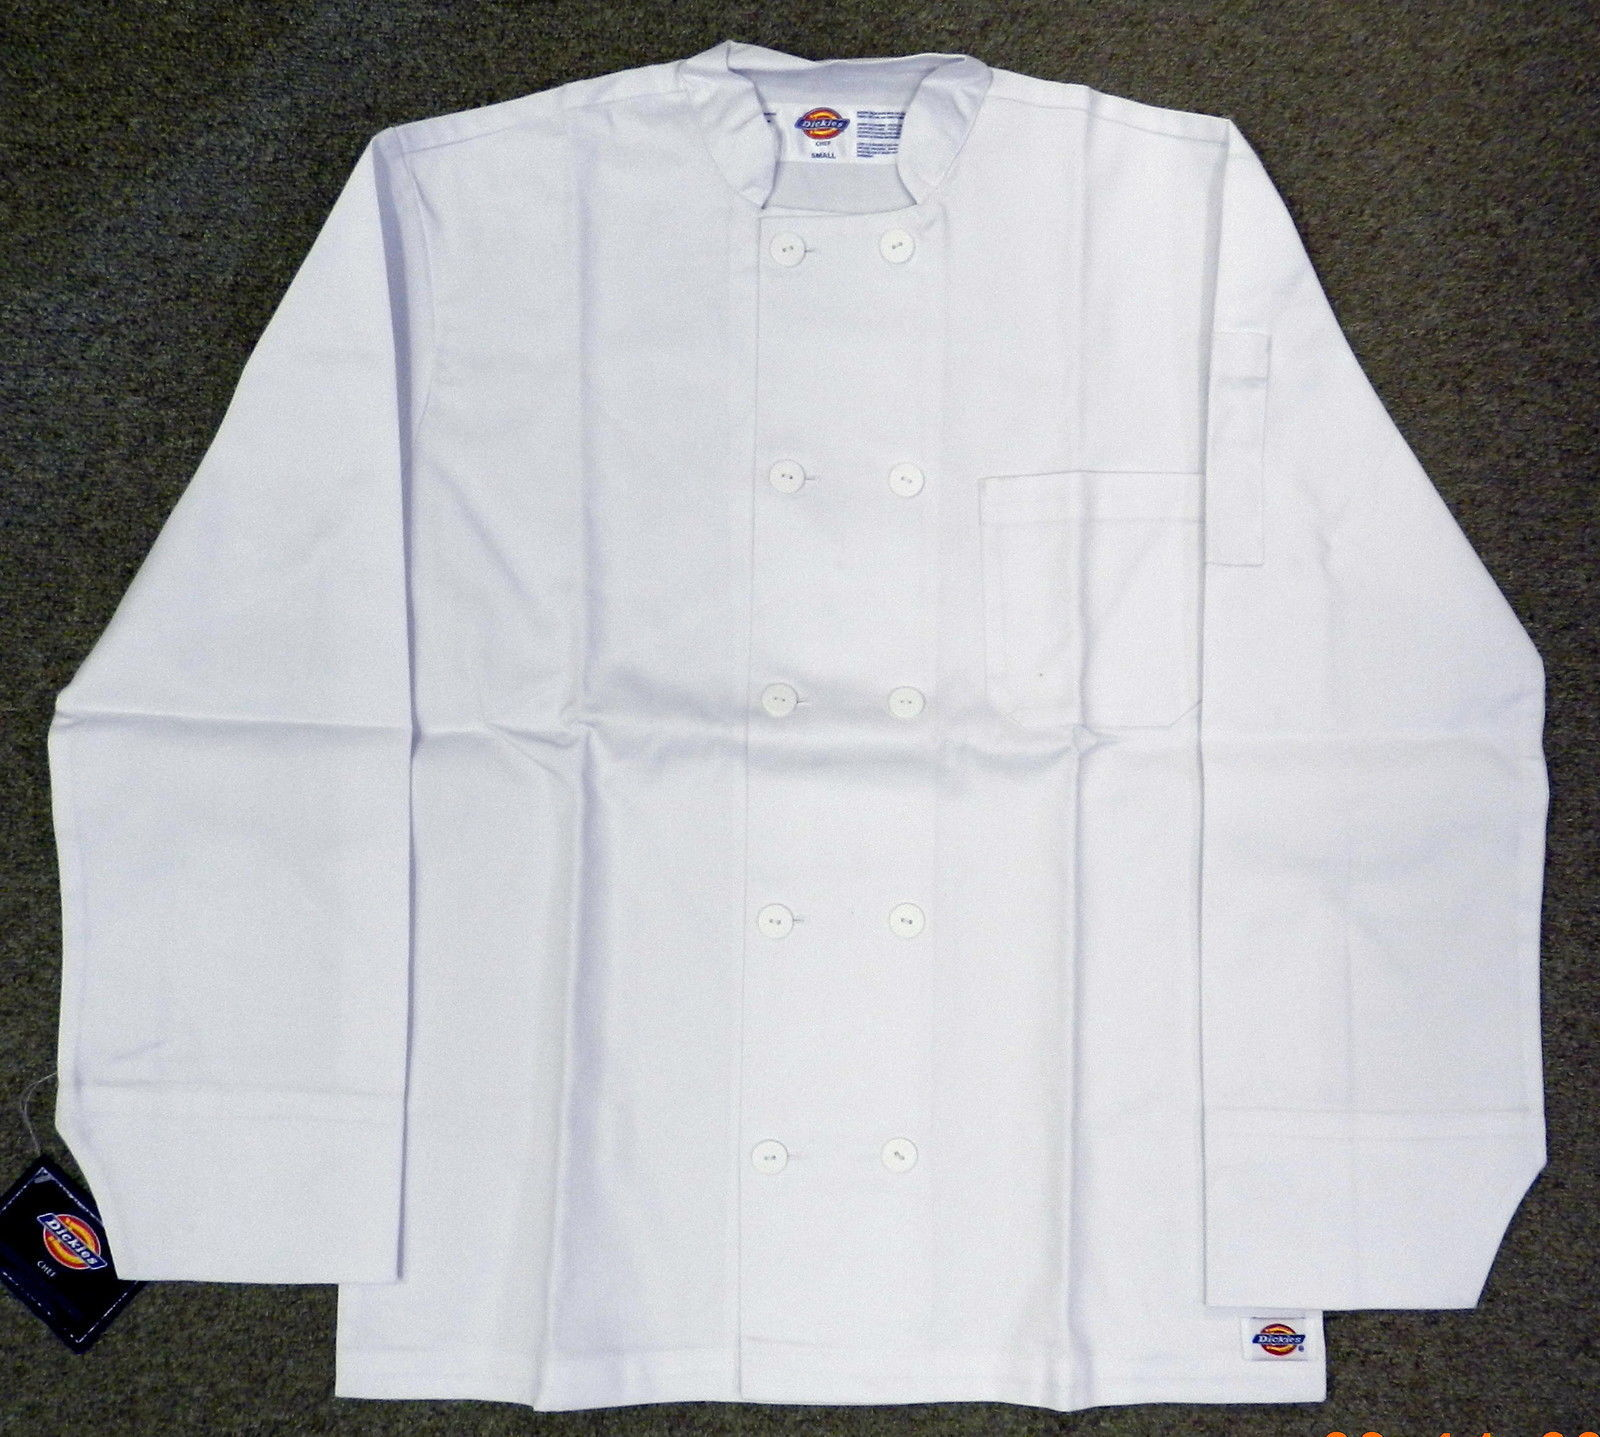 Dickies CW070305C Restaurant Button Front White Uniform Chef Coat Jacket 4XL New